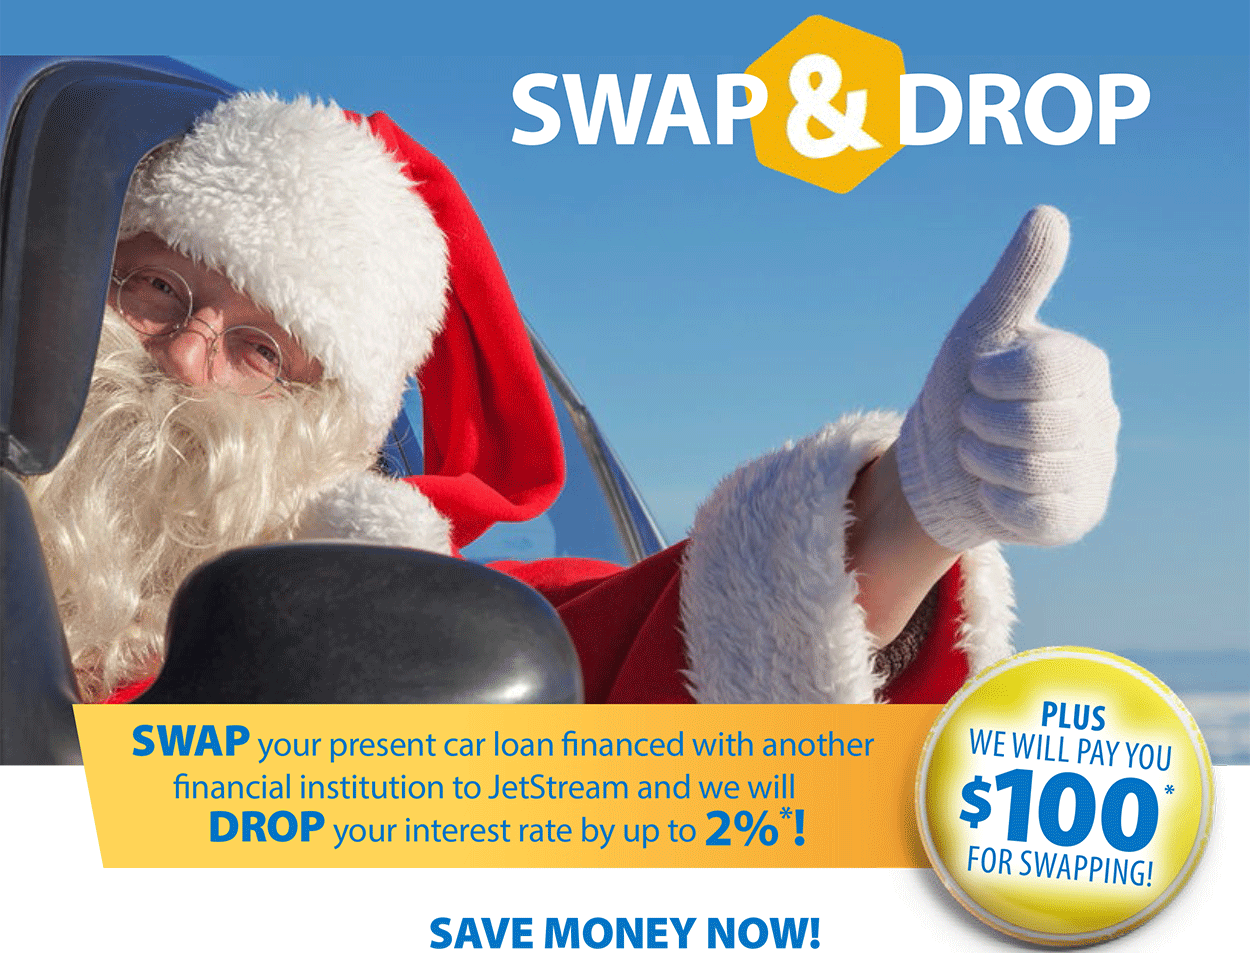 SWAP your present car loan financed with another lender to us & we will  DROP your interest rate by up to 2%